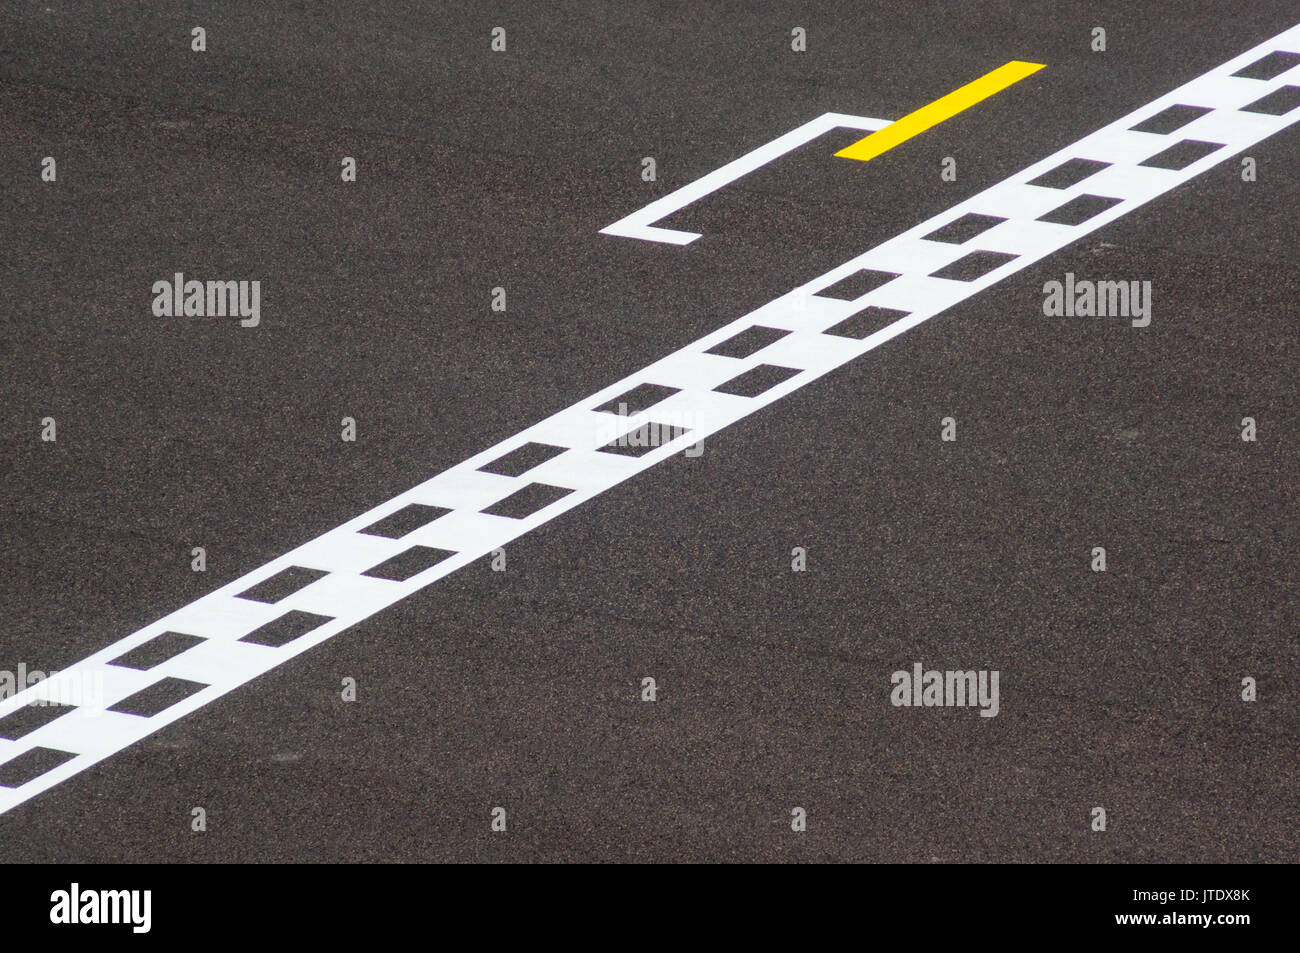 Minimalistic photo of a chequered finish line on a track. Signifies the end of a project or event - Stock Image